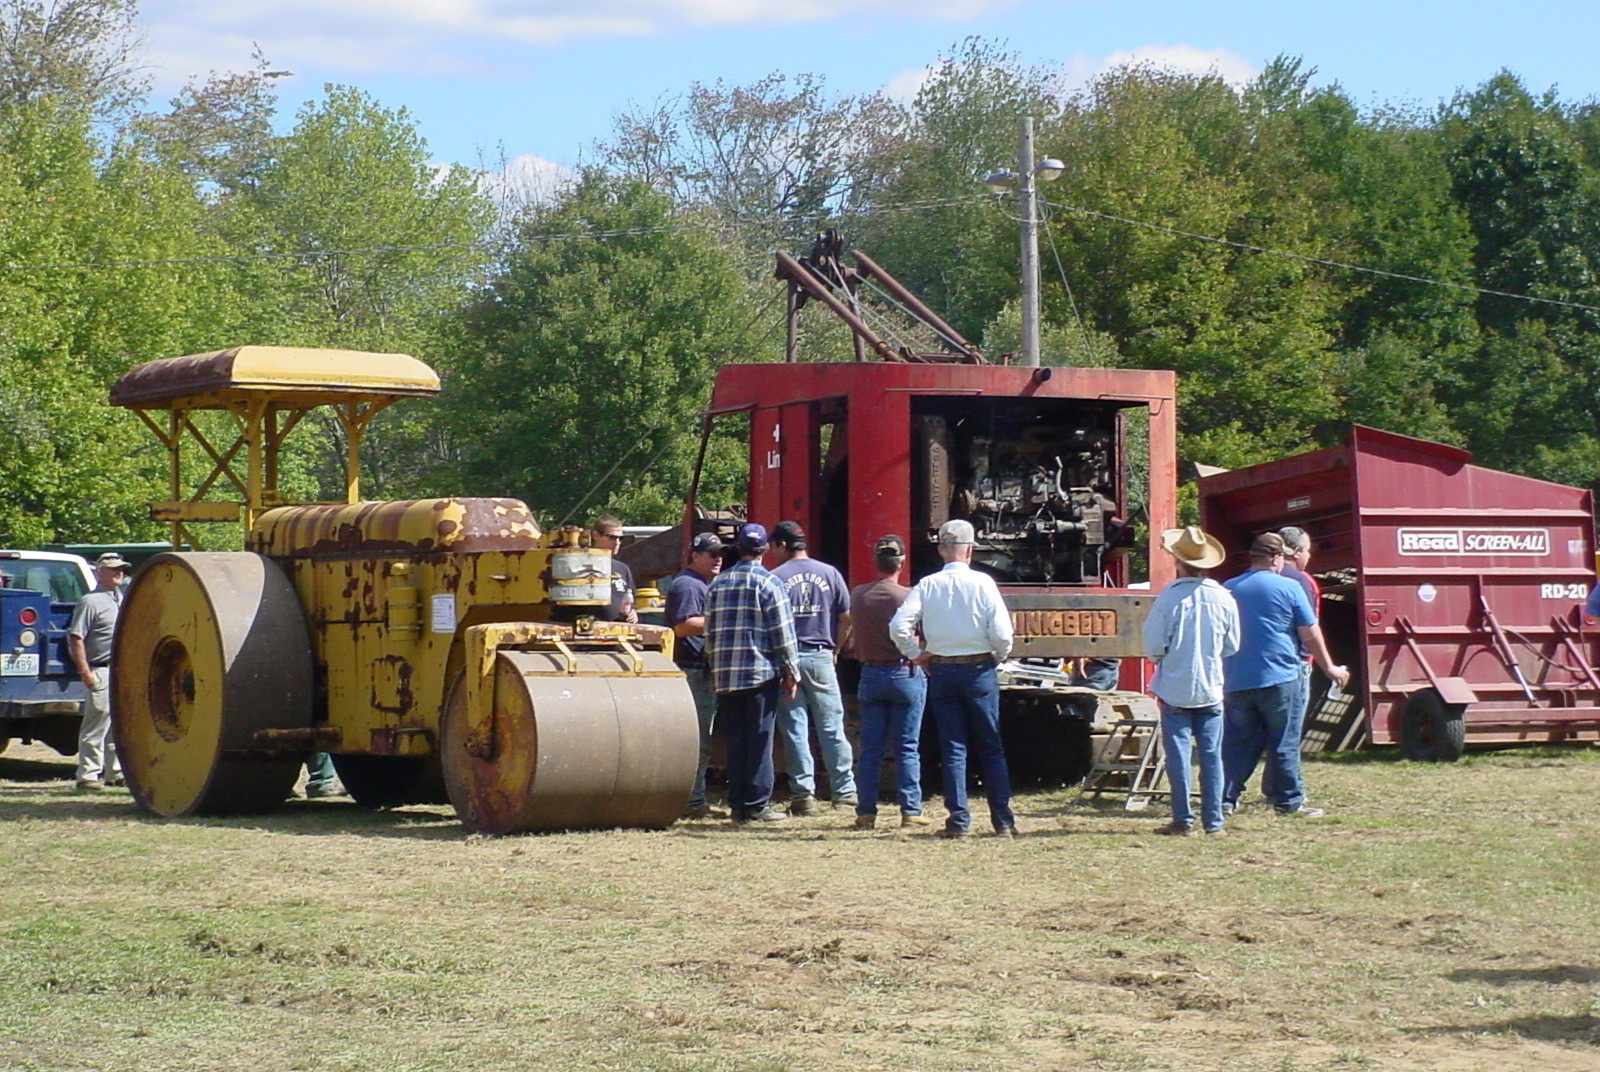 Historical constuction equipment on display